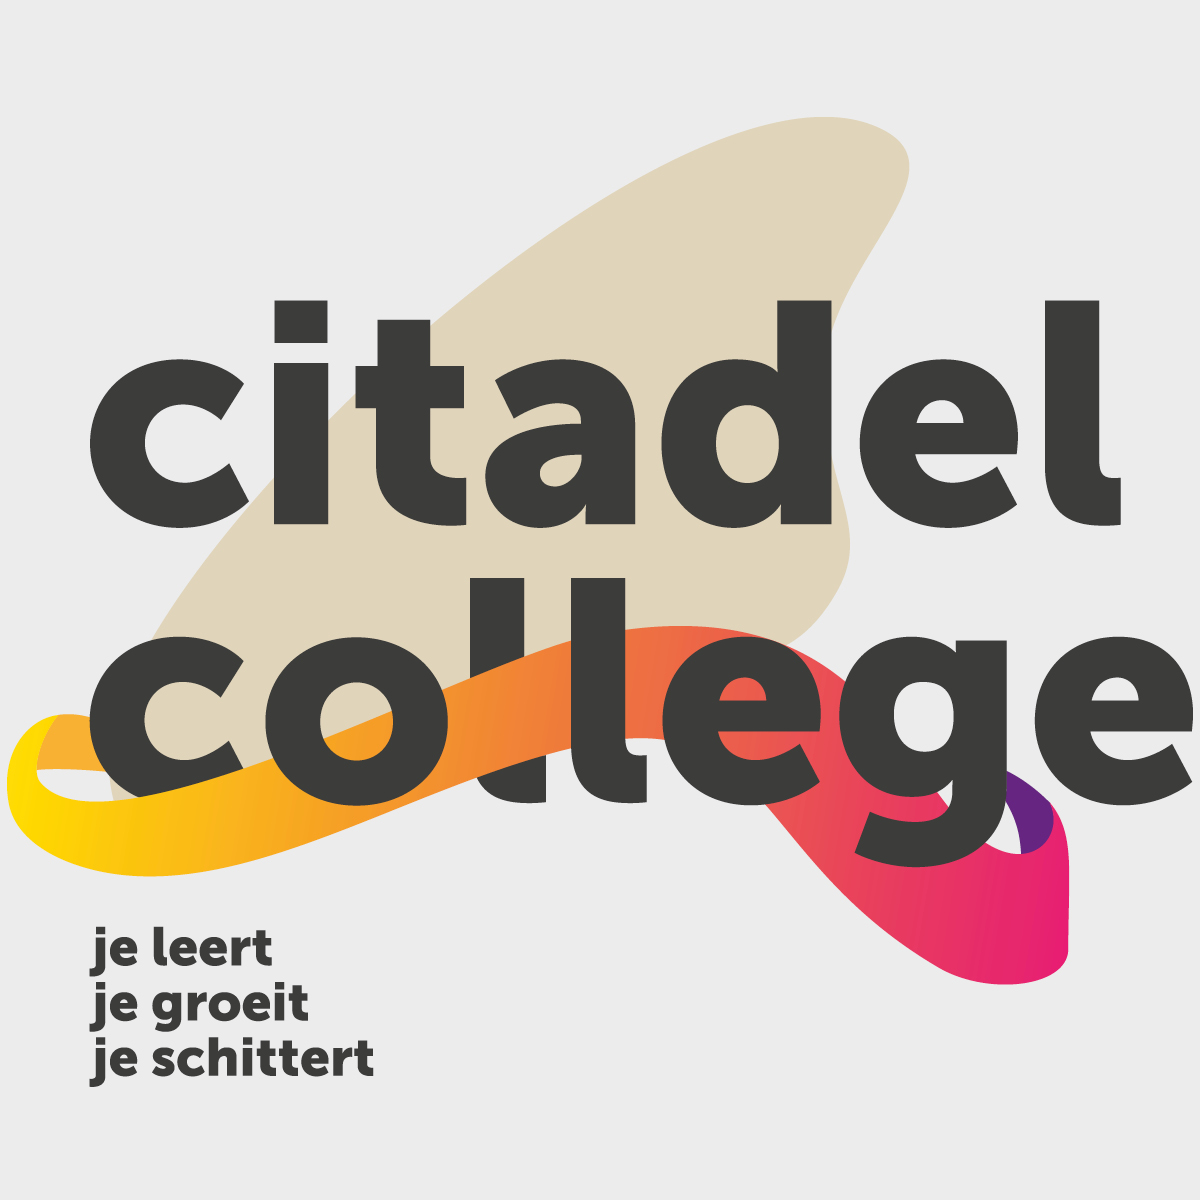 Corporate identity Citadel College - creative digital agency Puntkomma Nijmegen